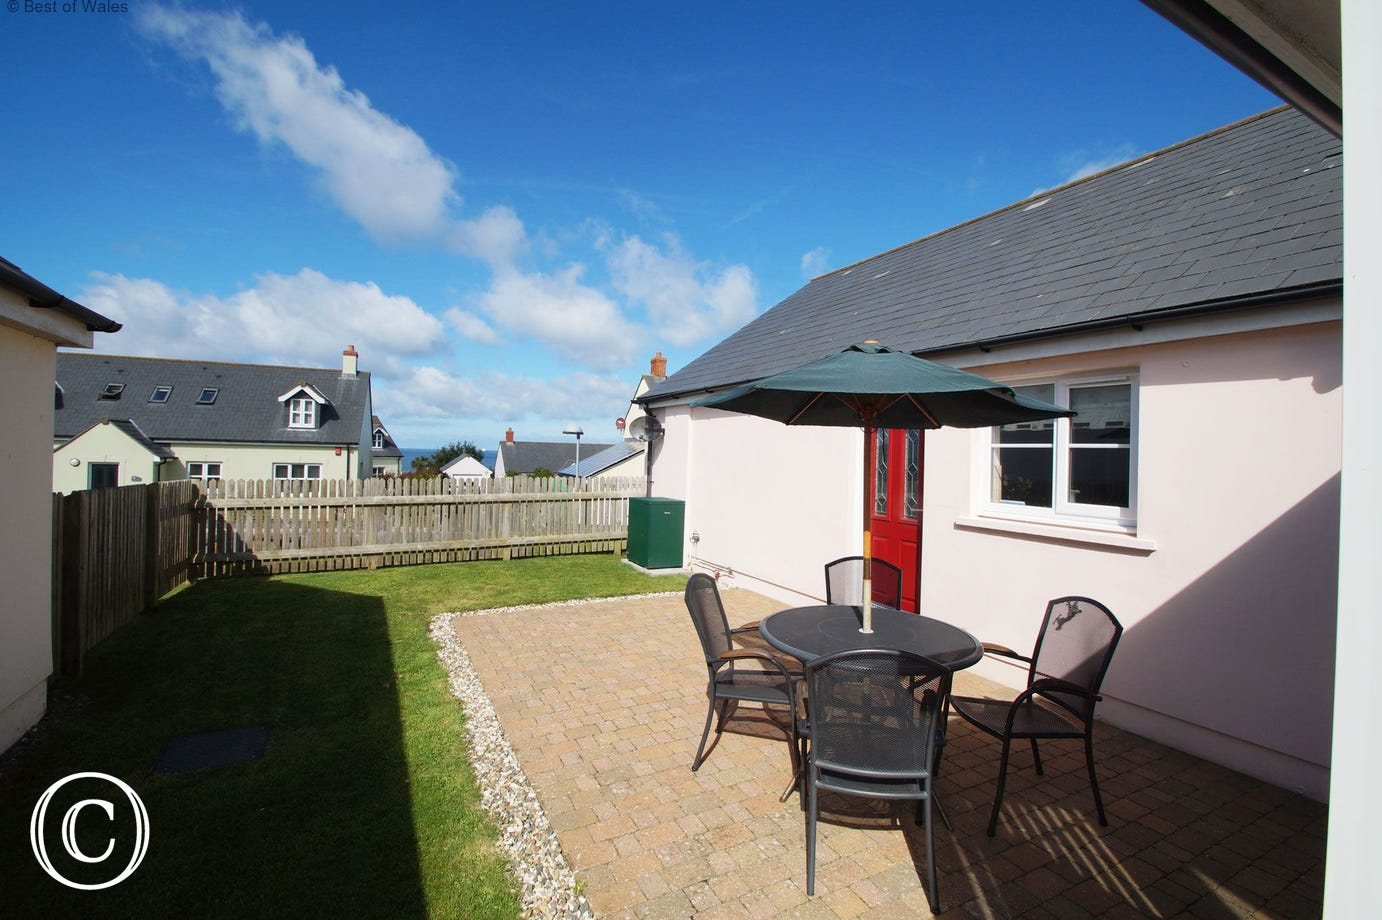 Self catering 5 star cottage in Broad Haven with sea views